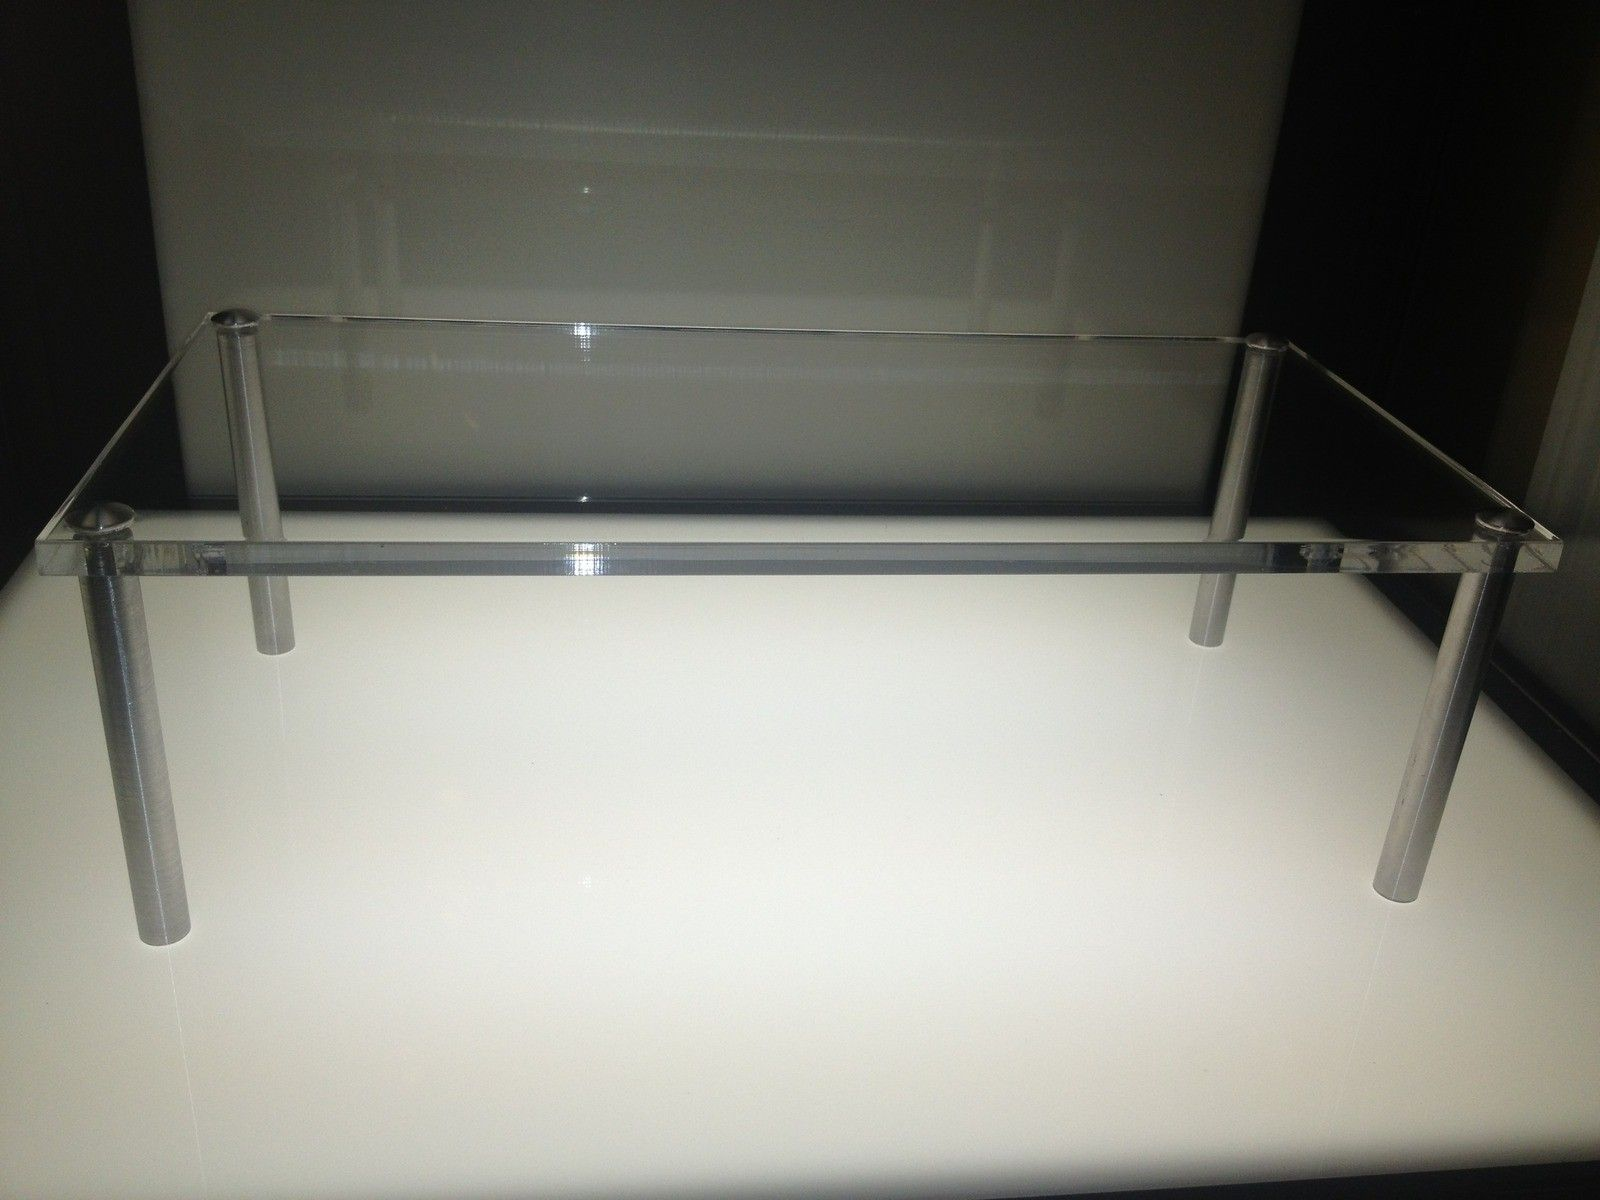 Brand New Oakley Acrylic Display Shelf $45.00 Shipped To USA - oakleyshelf01.jpg